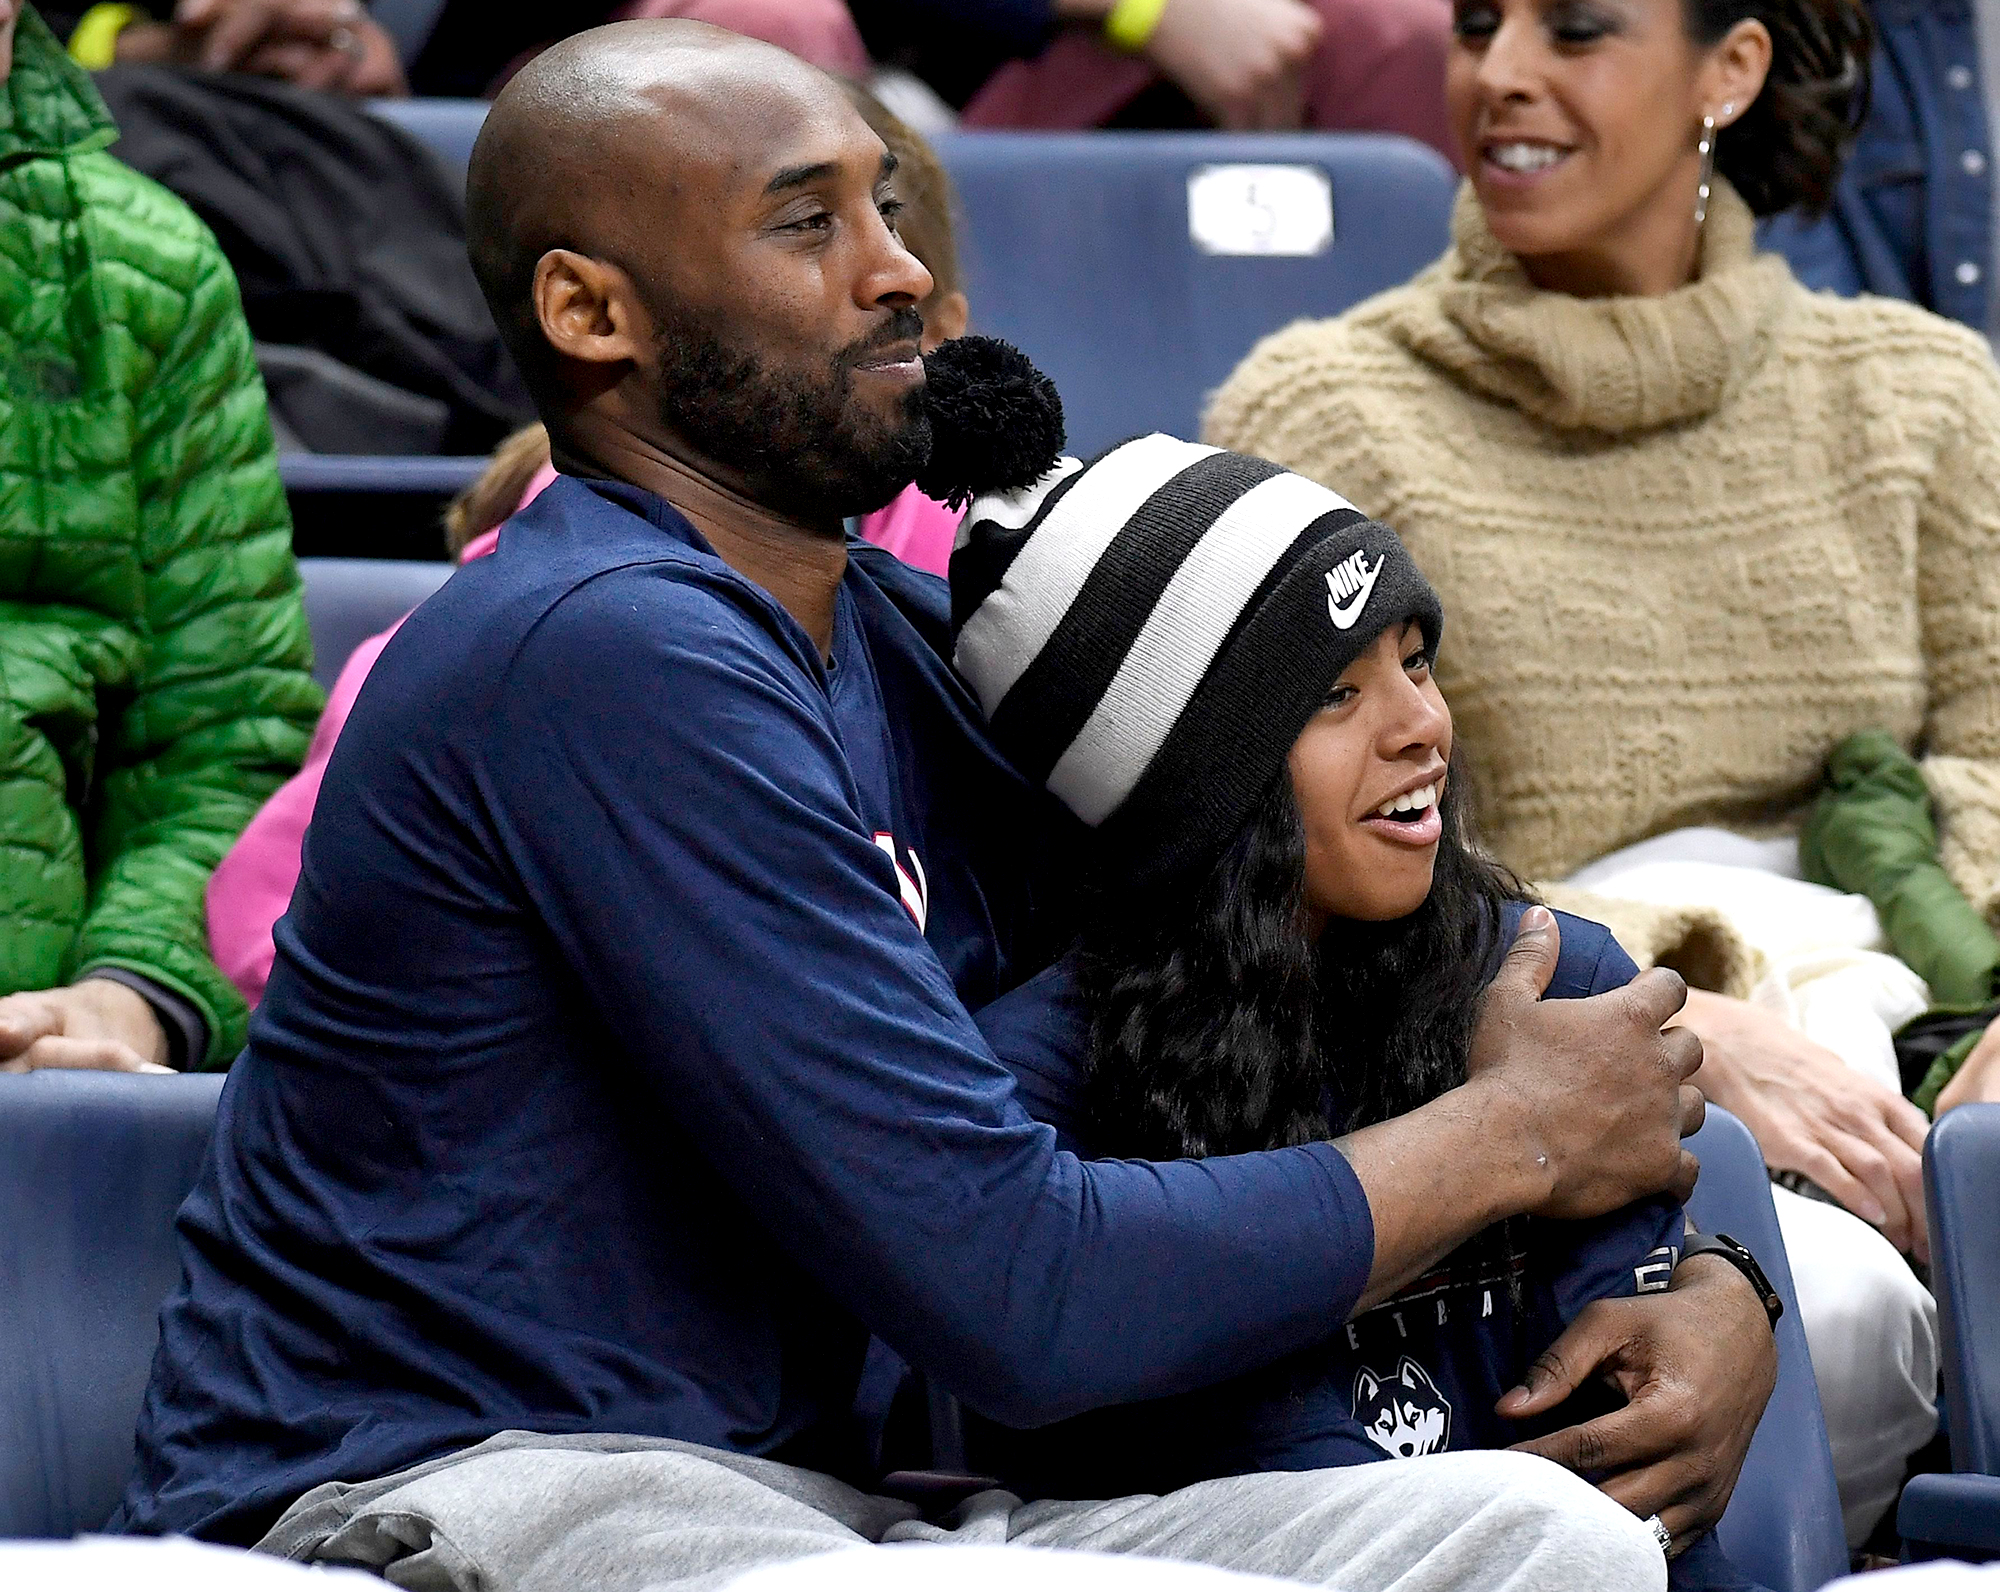 Kobe-Bryant-and-his-daughter-Gianna-Bryant-identified-helicopter-crash